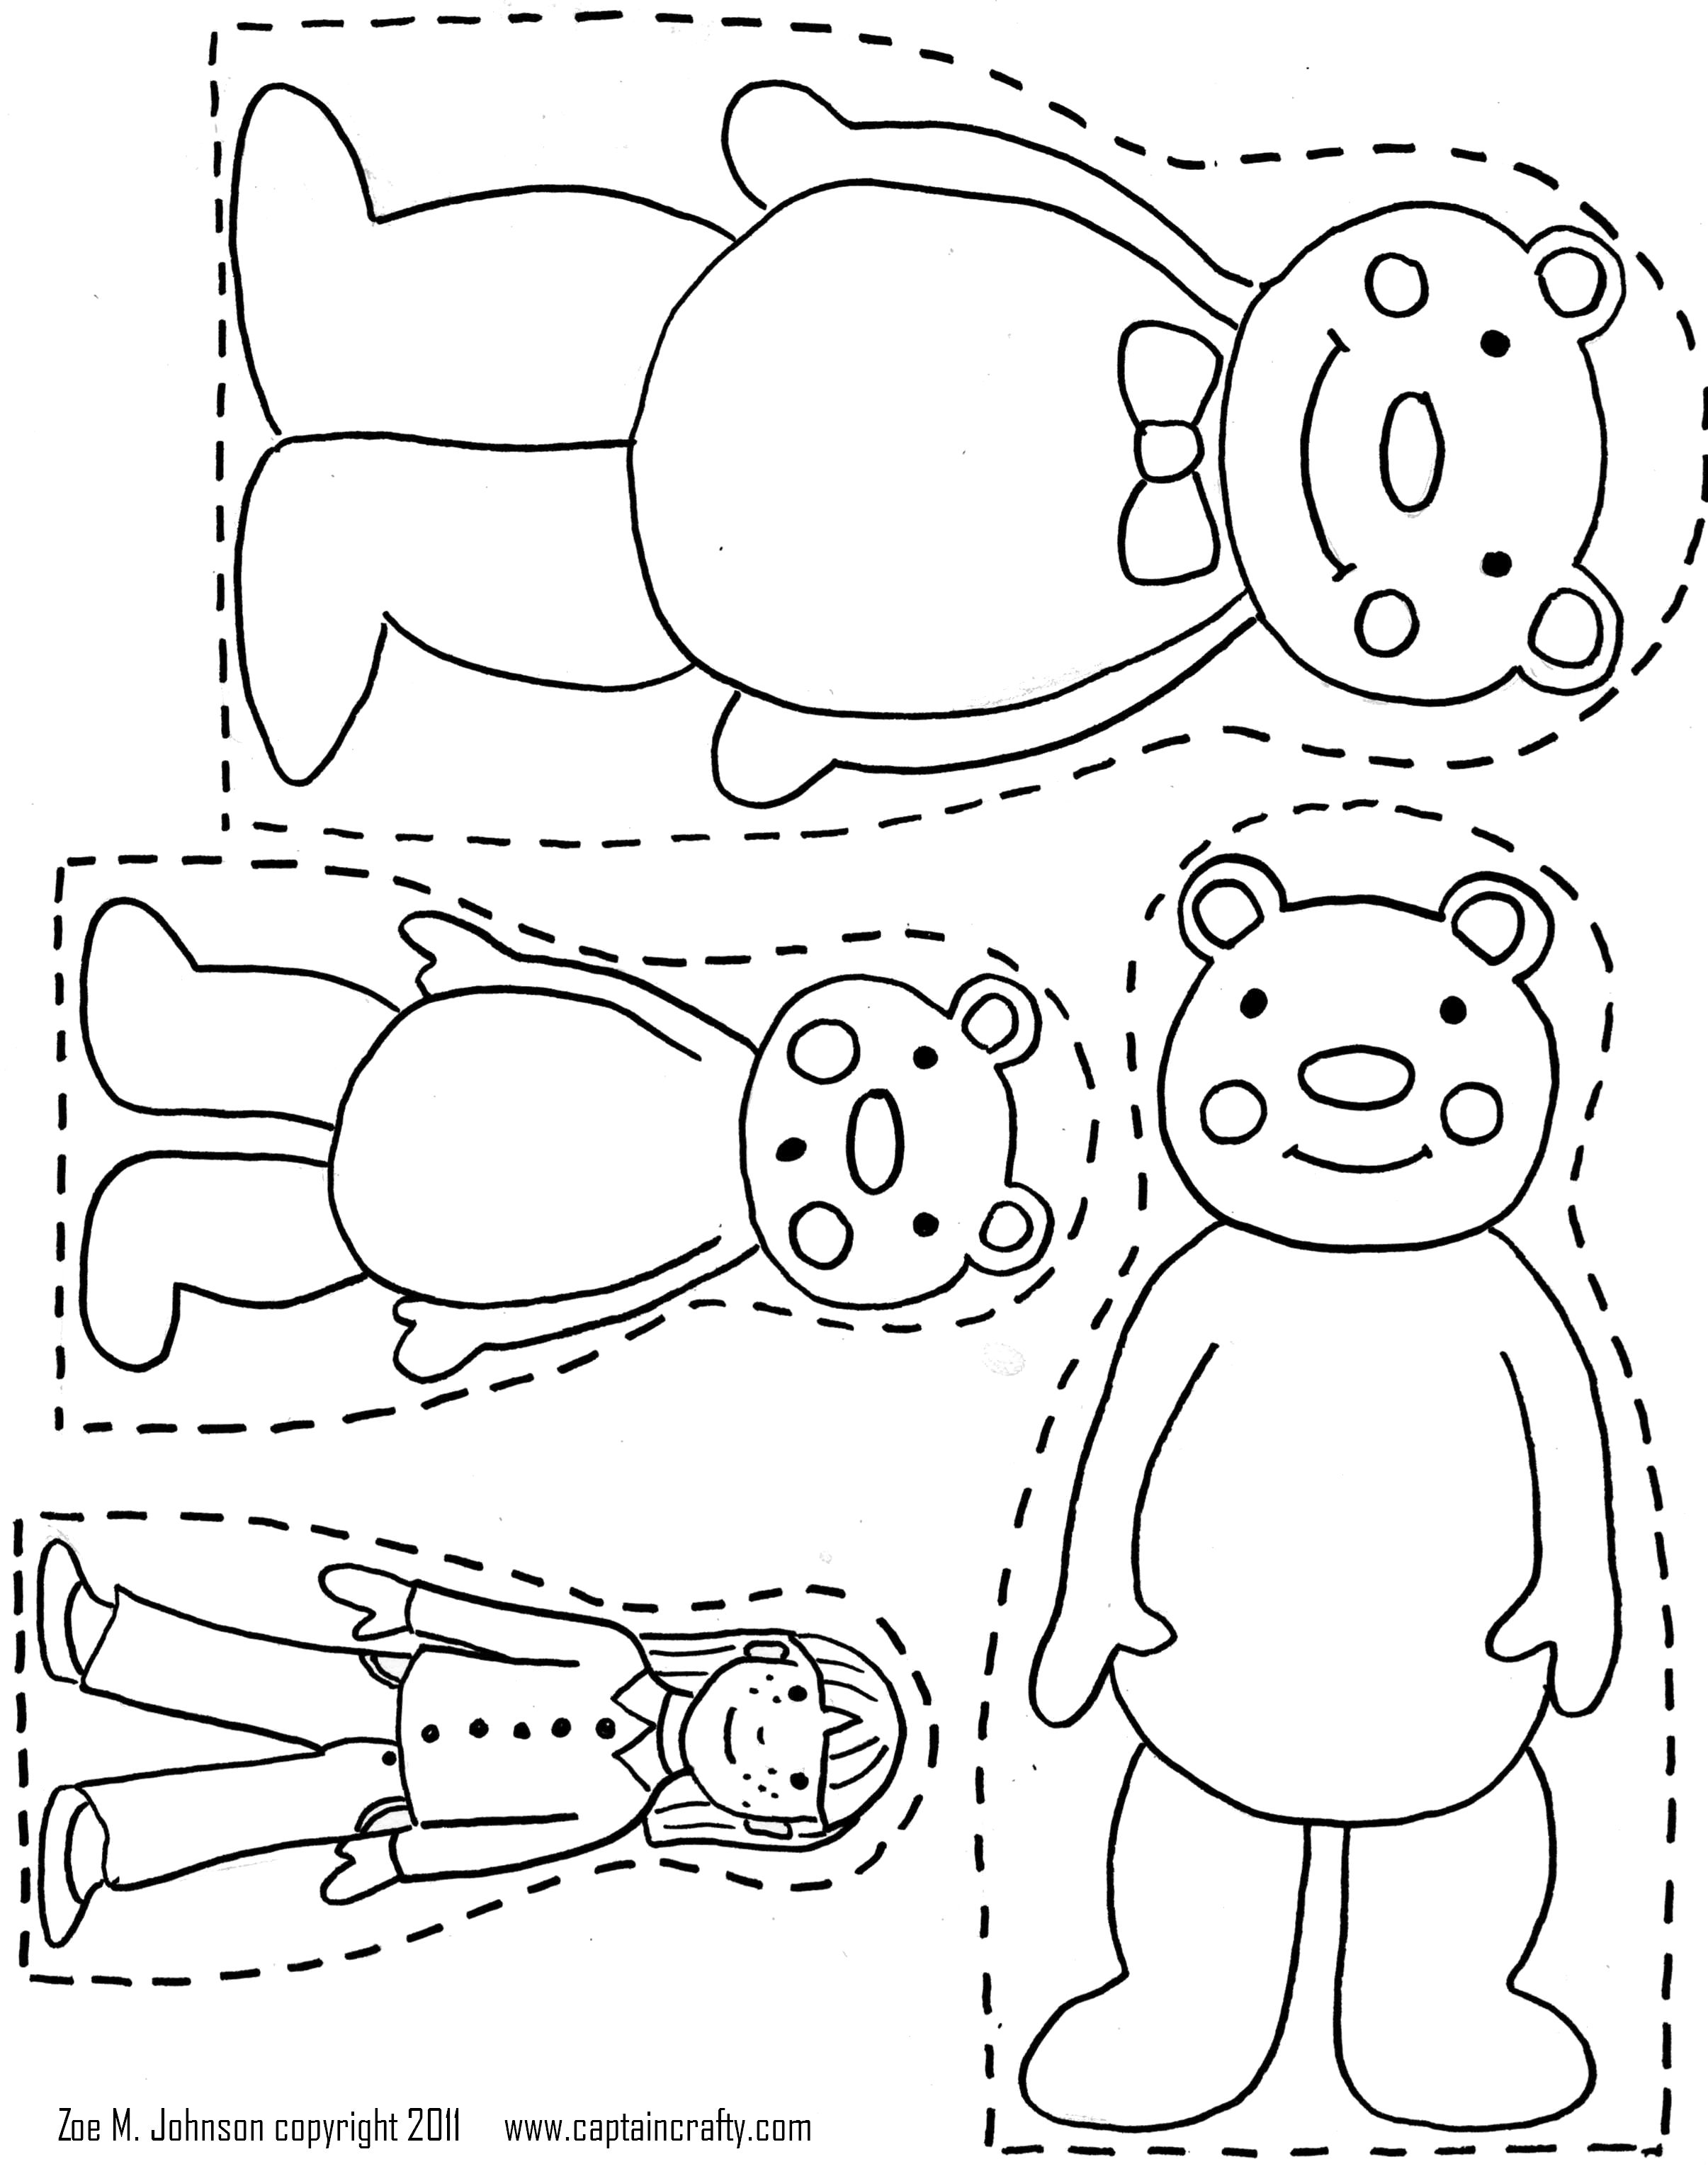 Three Bears Coloring Bing Images Goldilocks And The Three Bears Bear Coloring Pages Bear Crafts